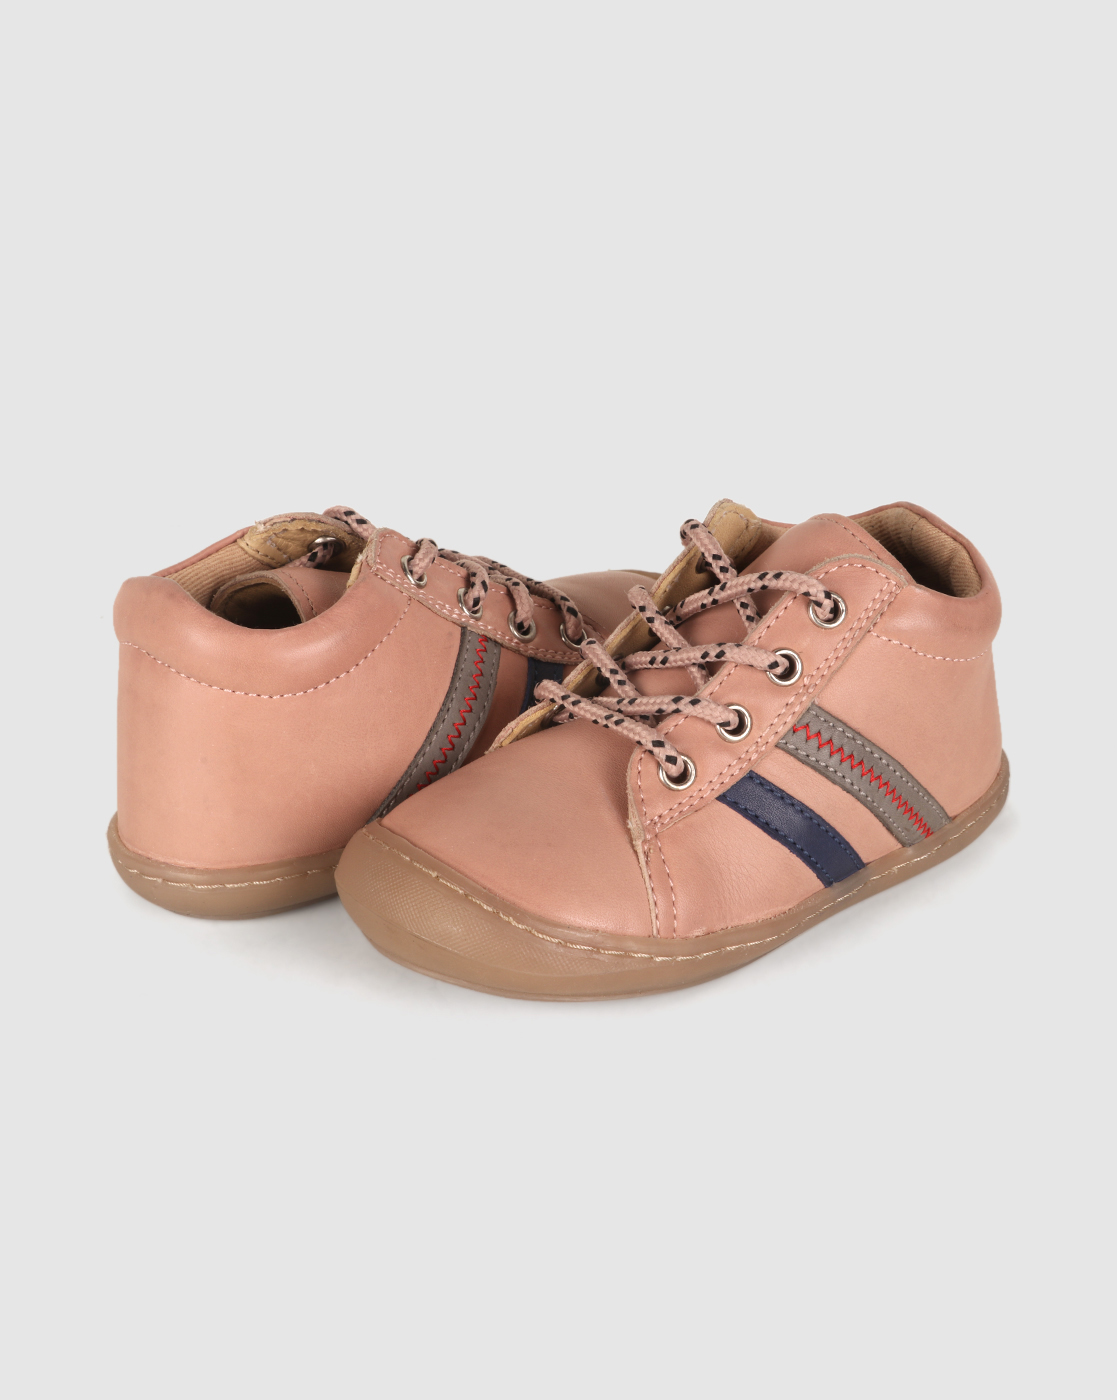 Mothercare | Boys First Walker Shoes - Pink